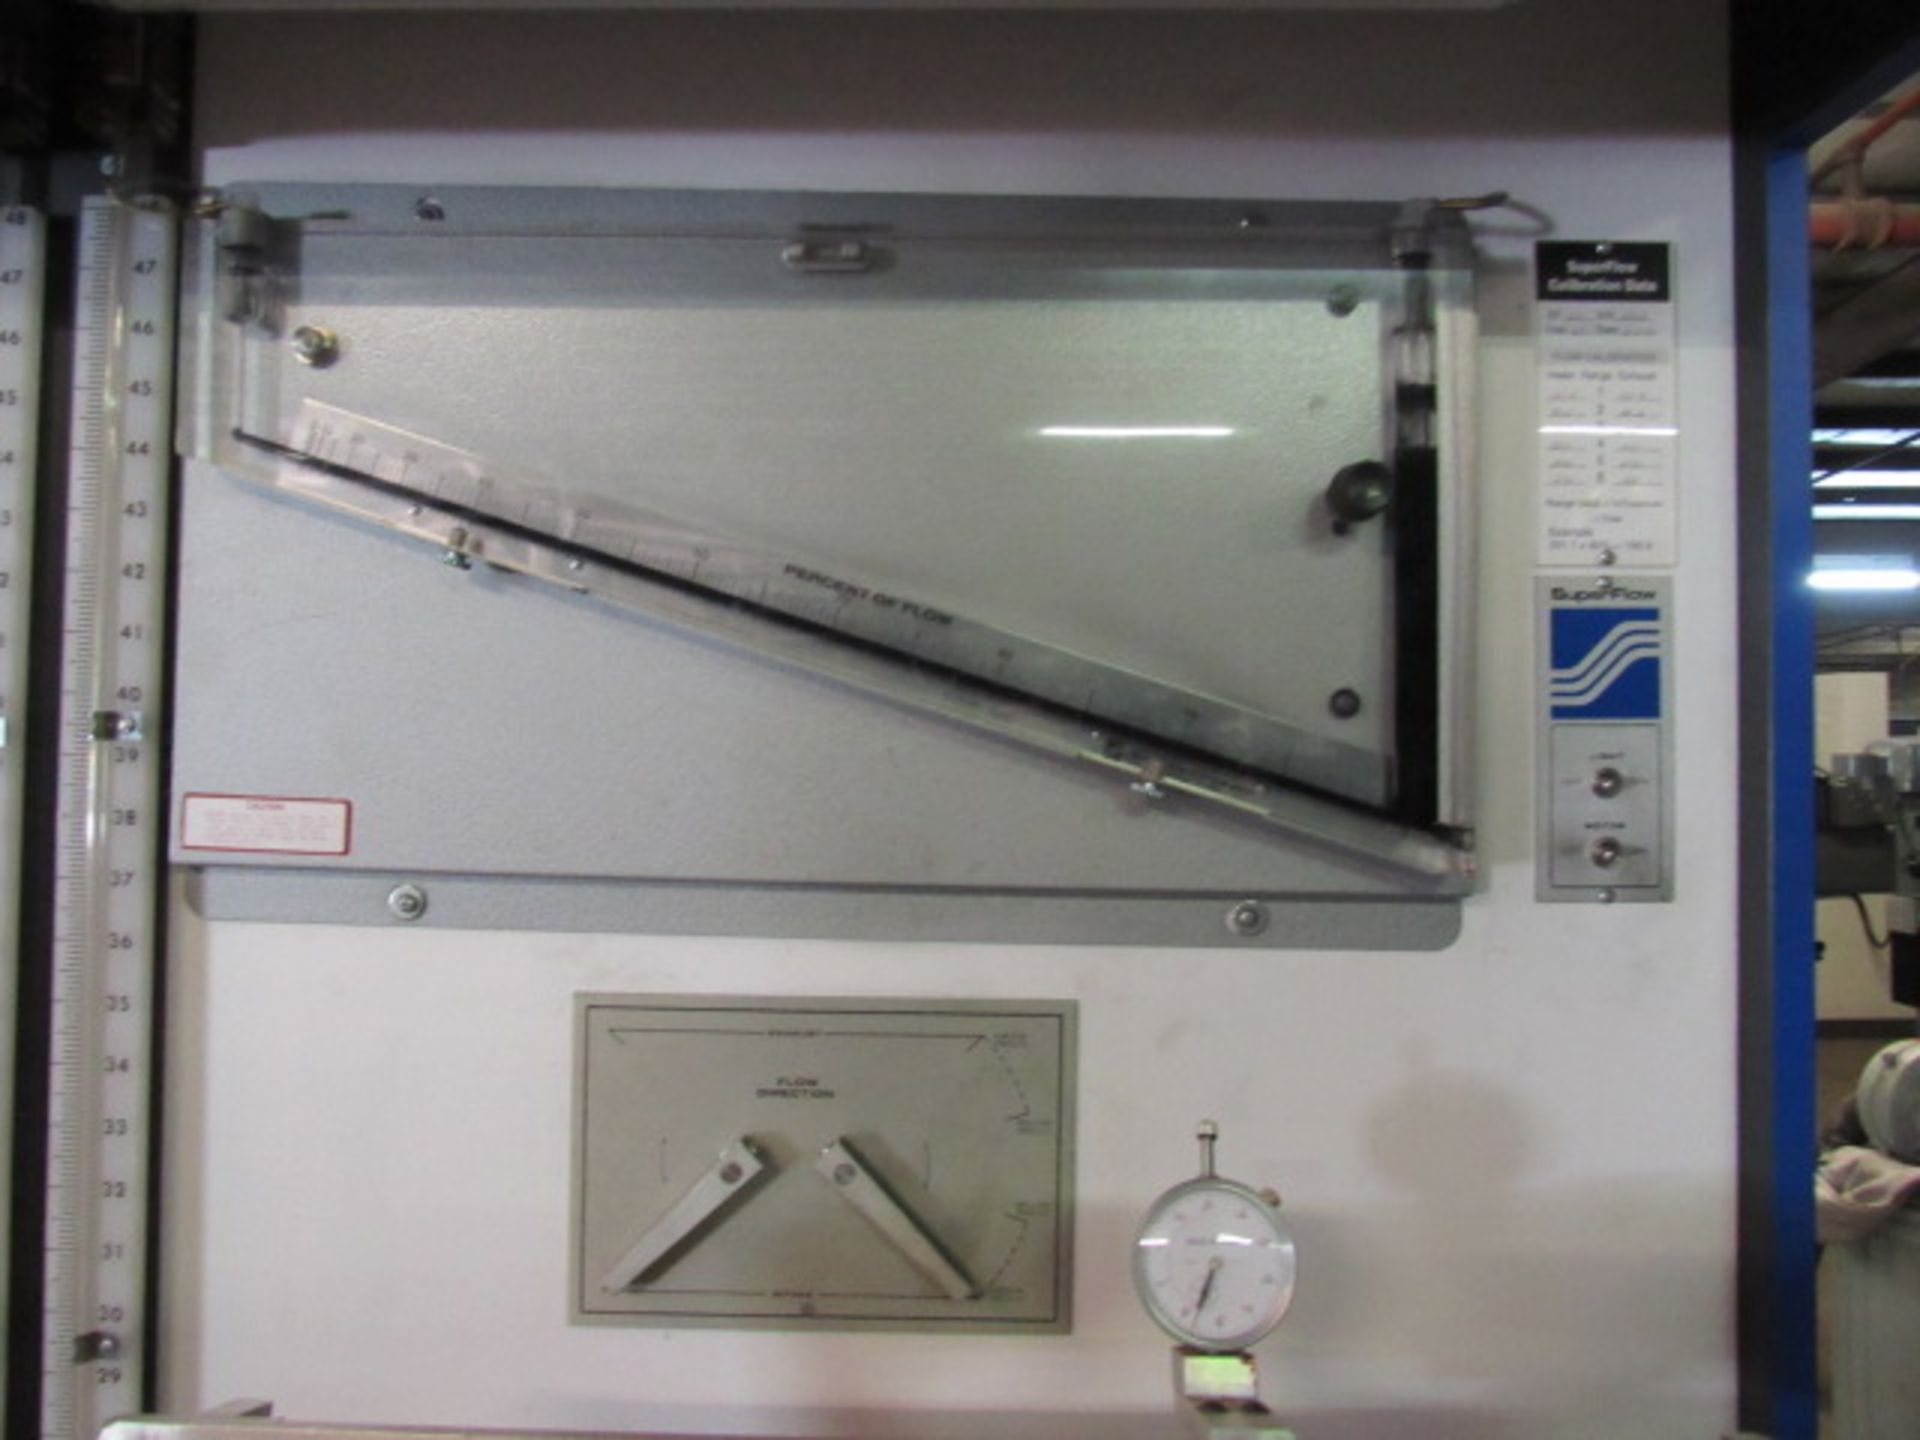 Superflow Model SF-600 Test System - Image 4 of 5